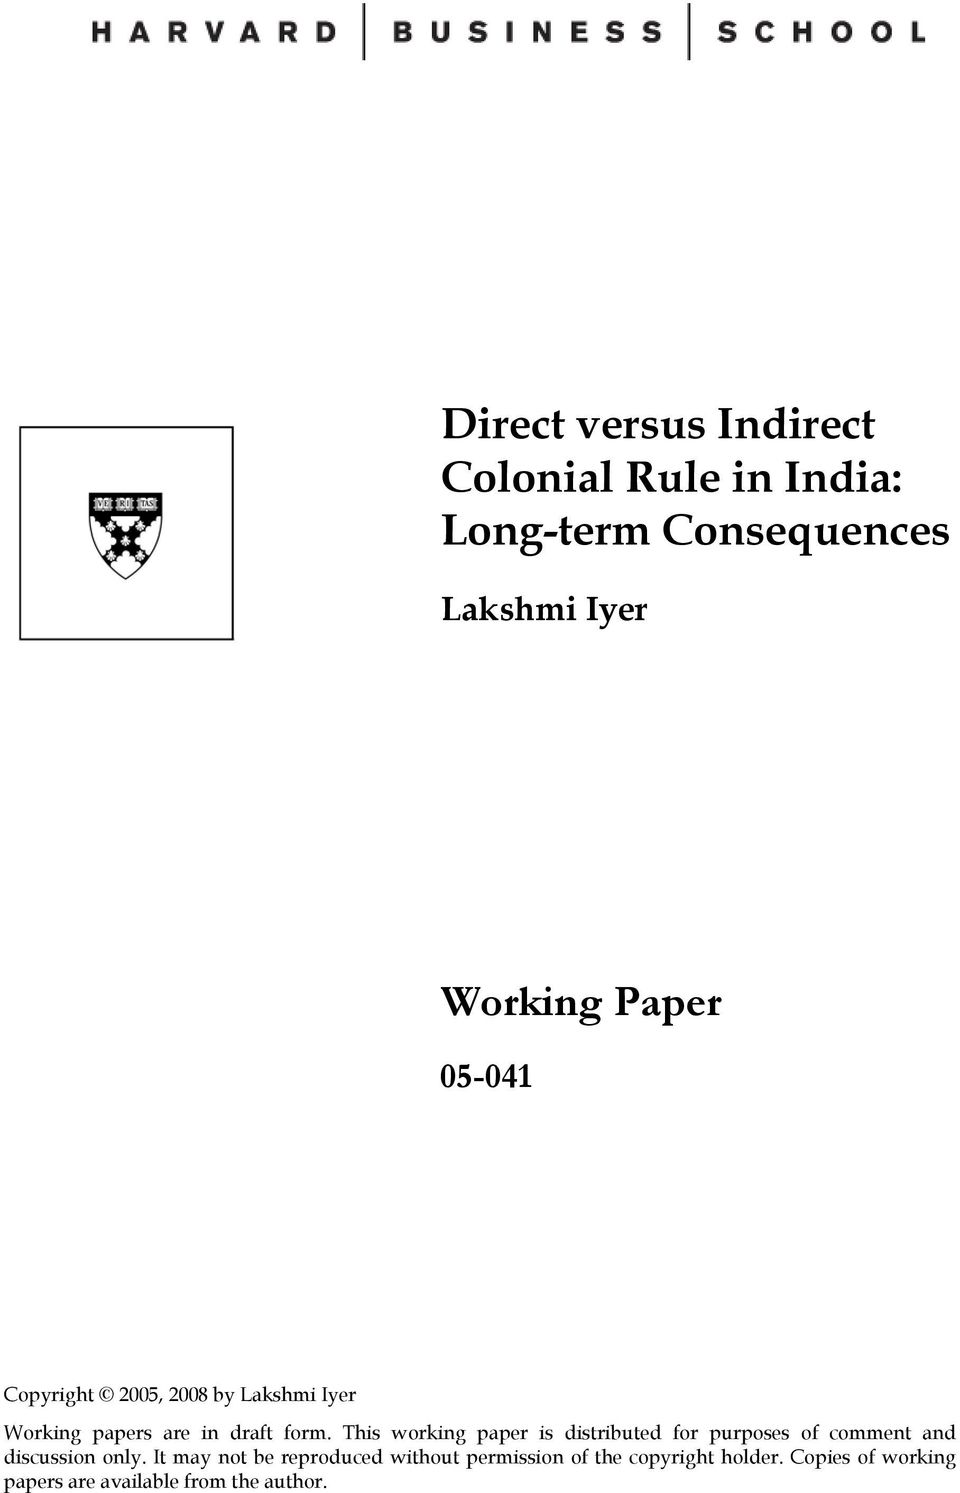 This working paper is distributed for purposes of comment and discussion only.